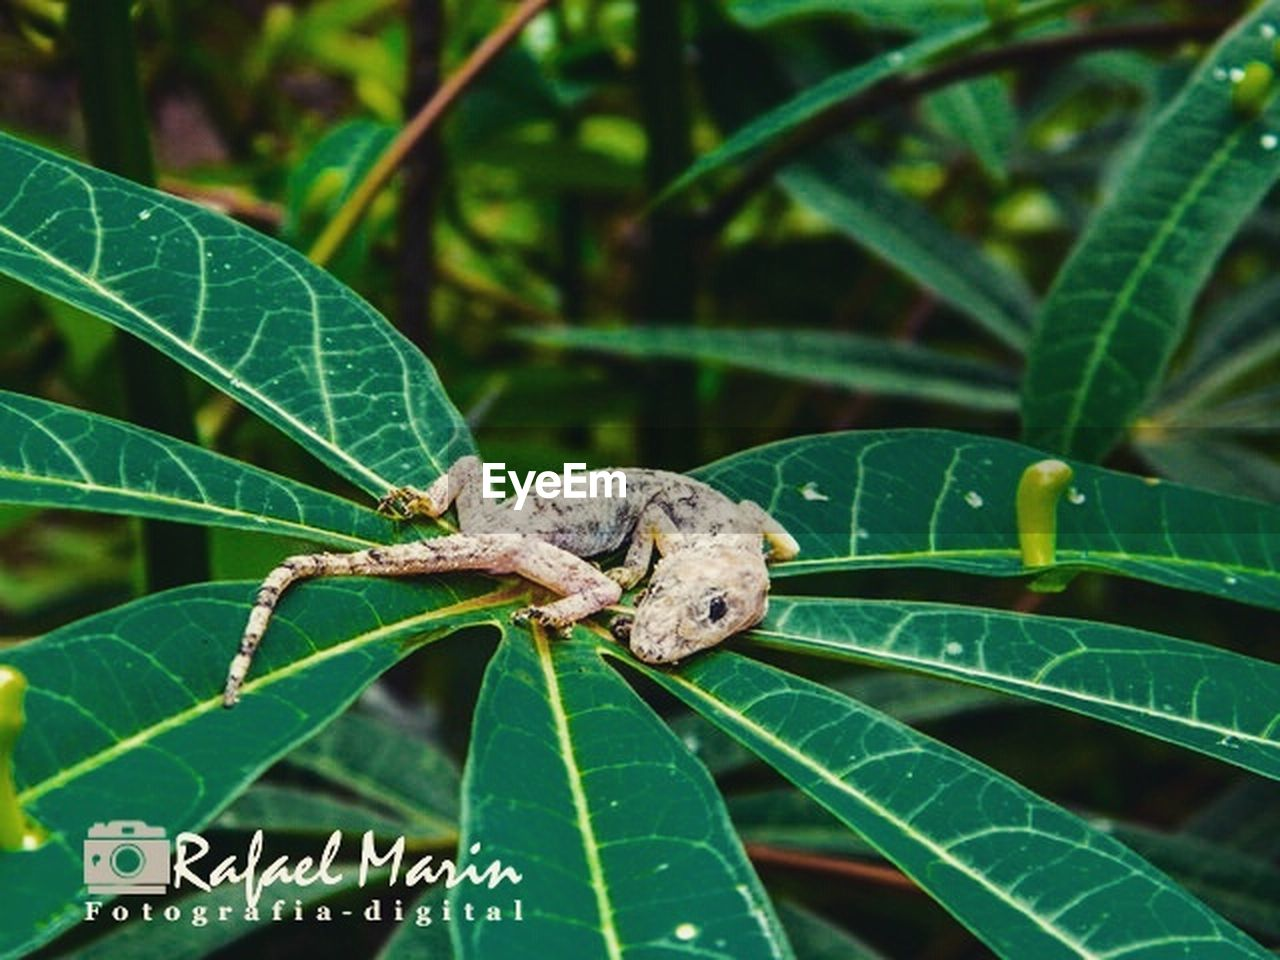 leaf, one animal, green color, animals in the wild, animal themes, insect, animal wildlife, day, nature, plant, outdoors, growth, close-up, no people